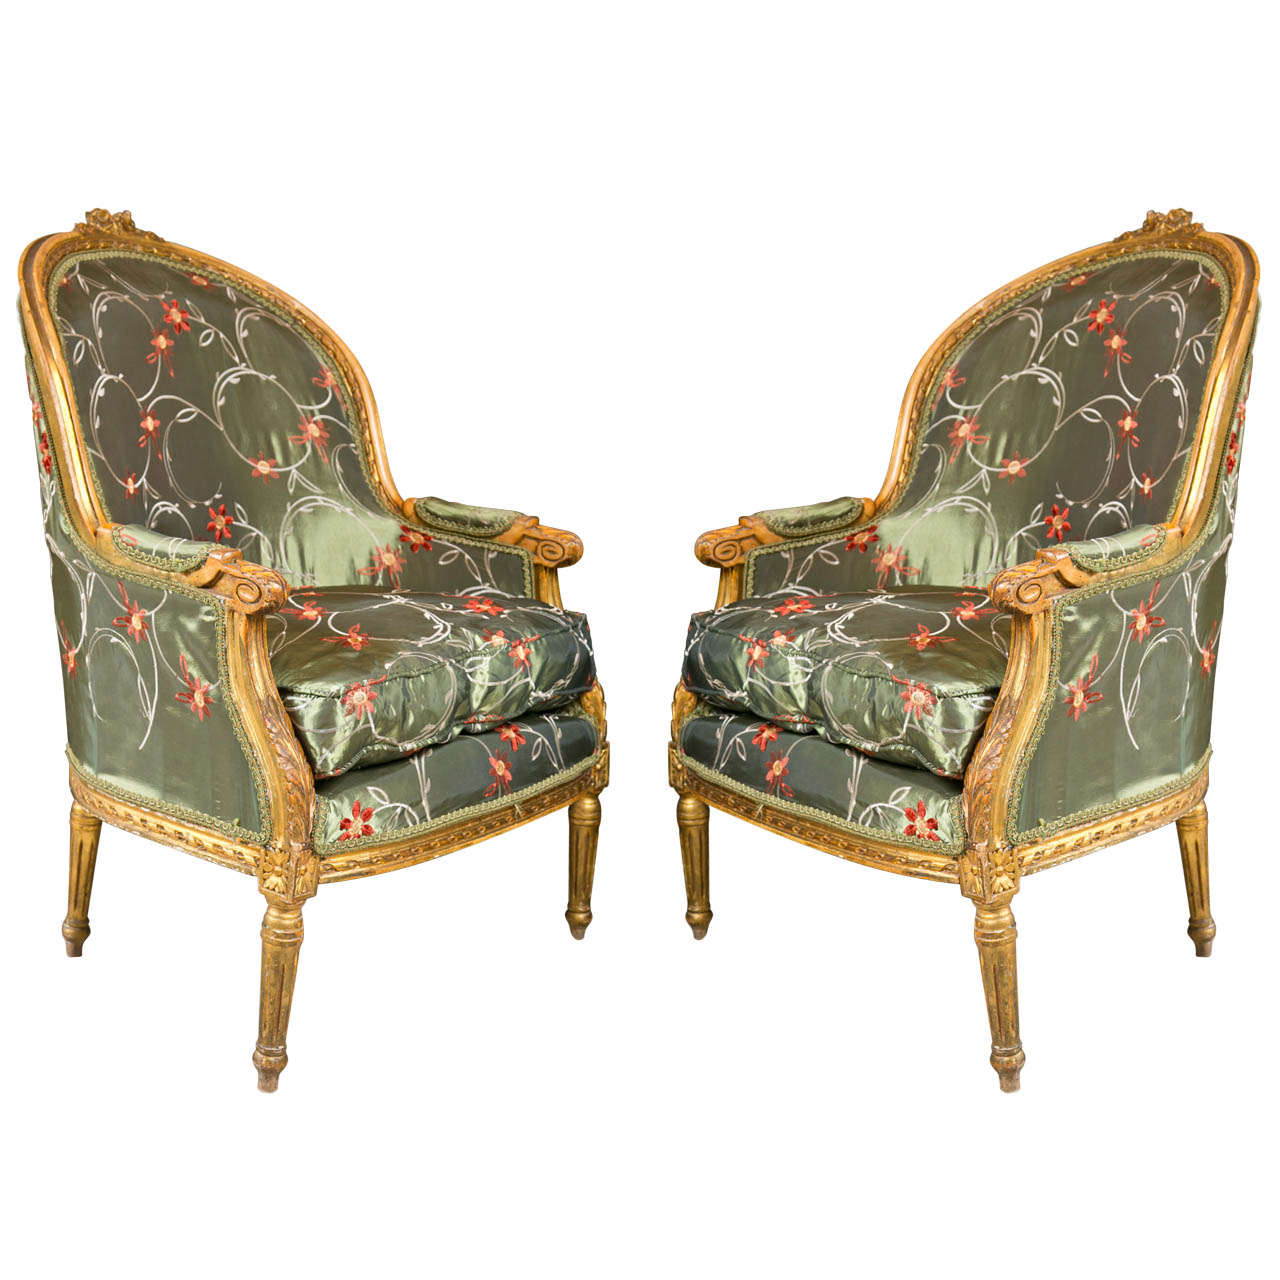 Antique louis xvi chair - Pair Of French Louis Xvi Style Bergere Chairs By Jansen 1